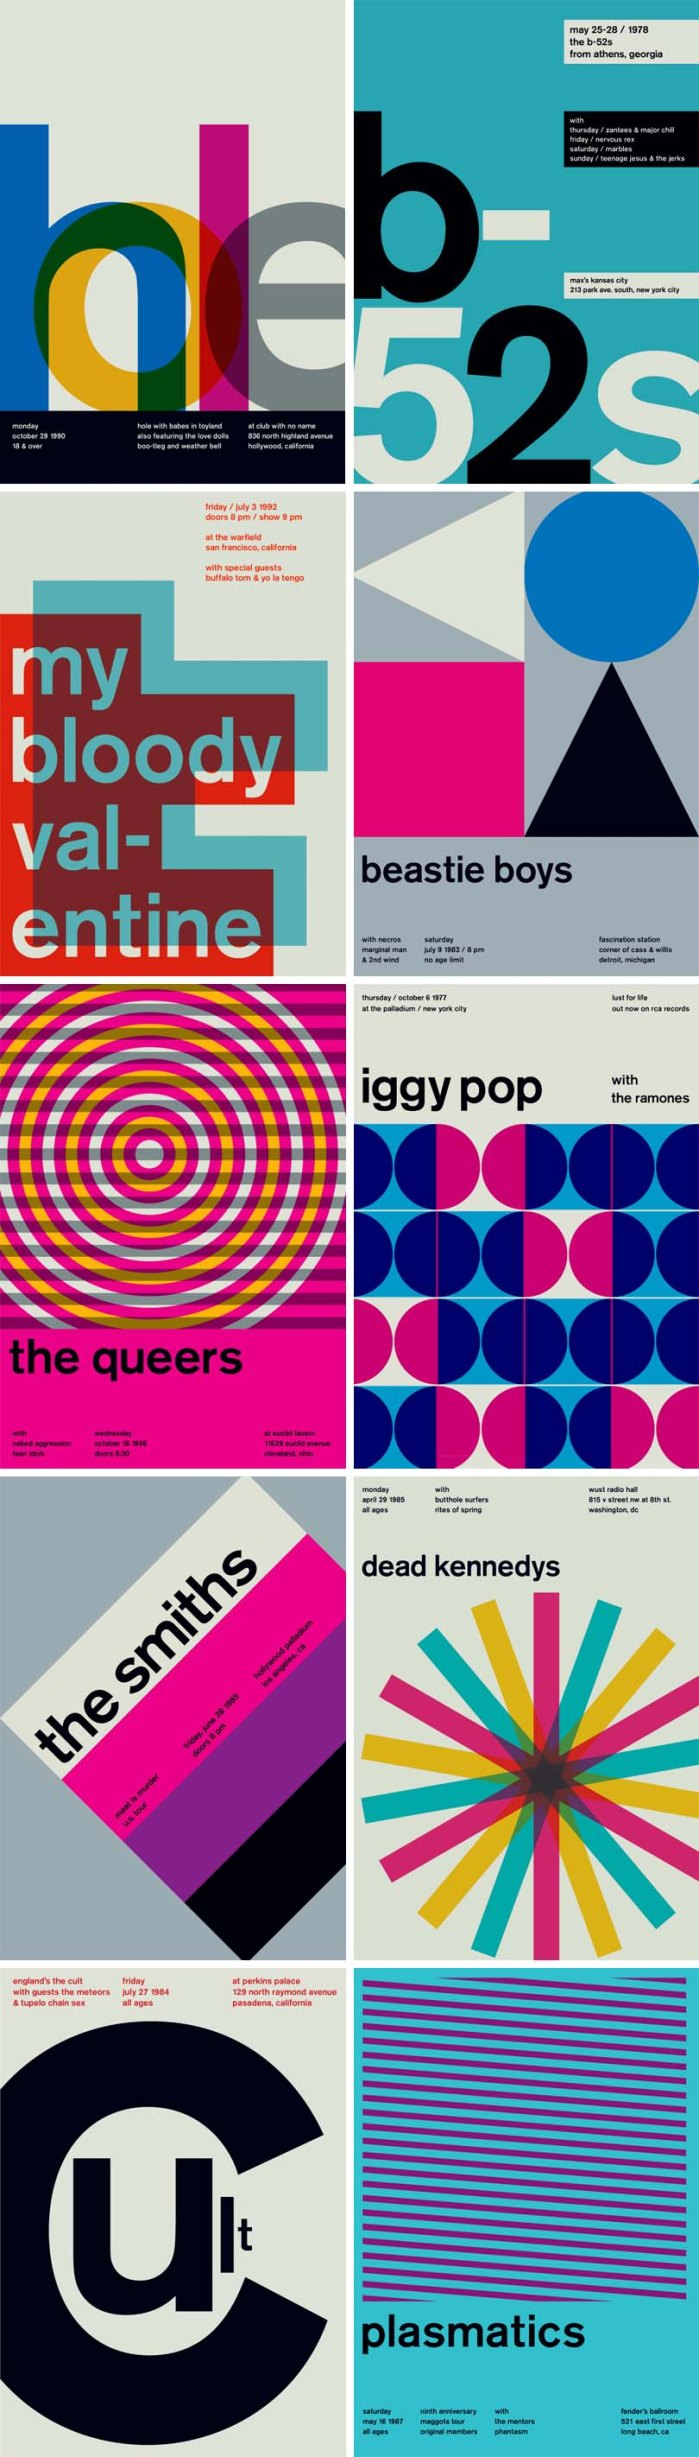 Swissted, Mike Joyce, Graphic Design, typography,Redesigning old punk, hardcore, and indie rock show flyers into Swiss modern posters